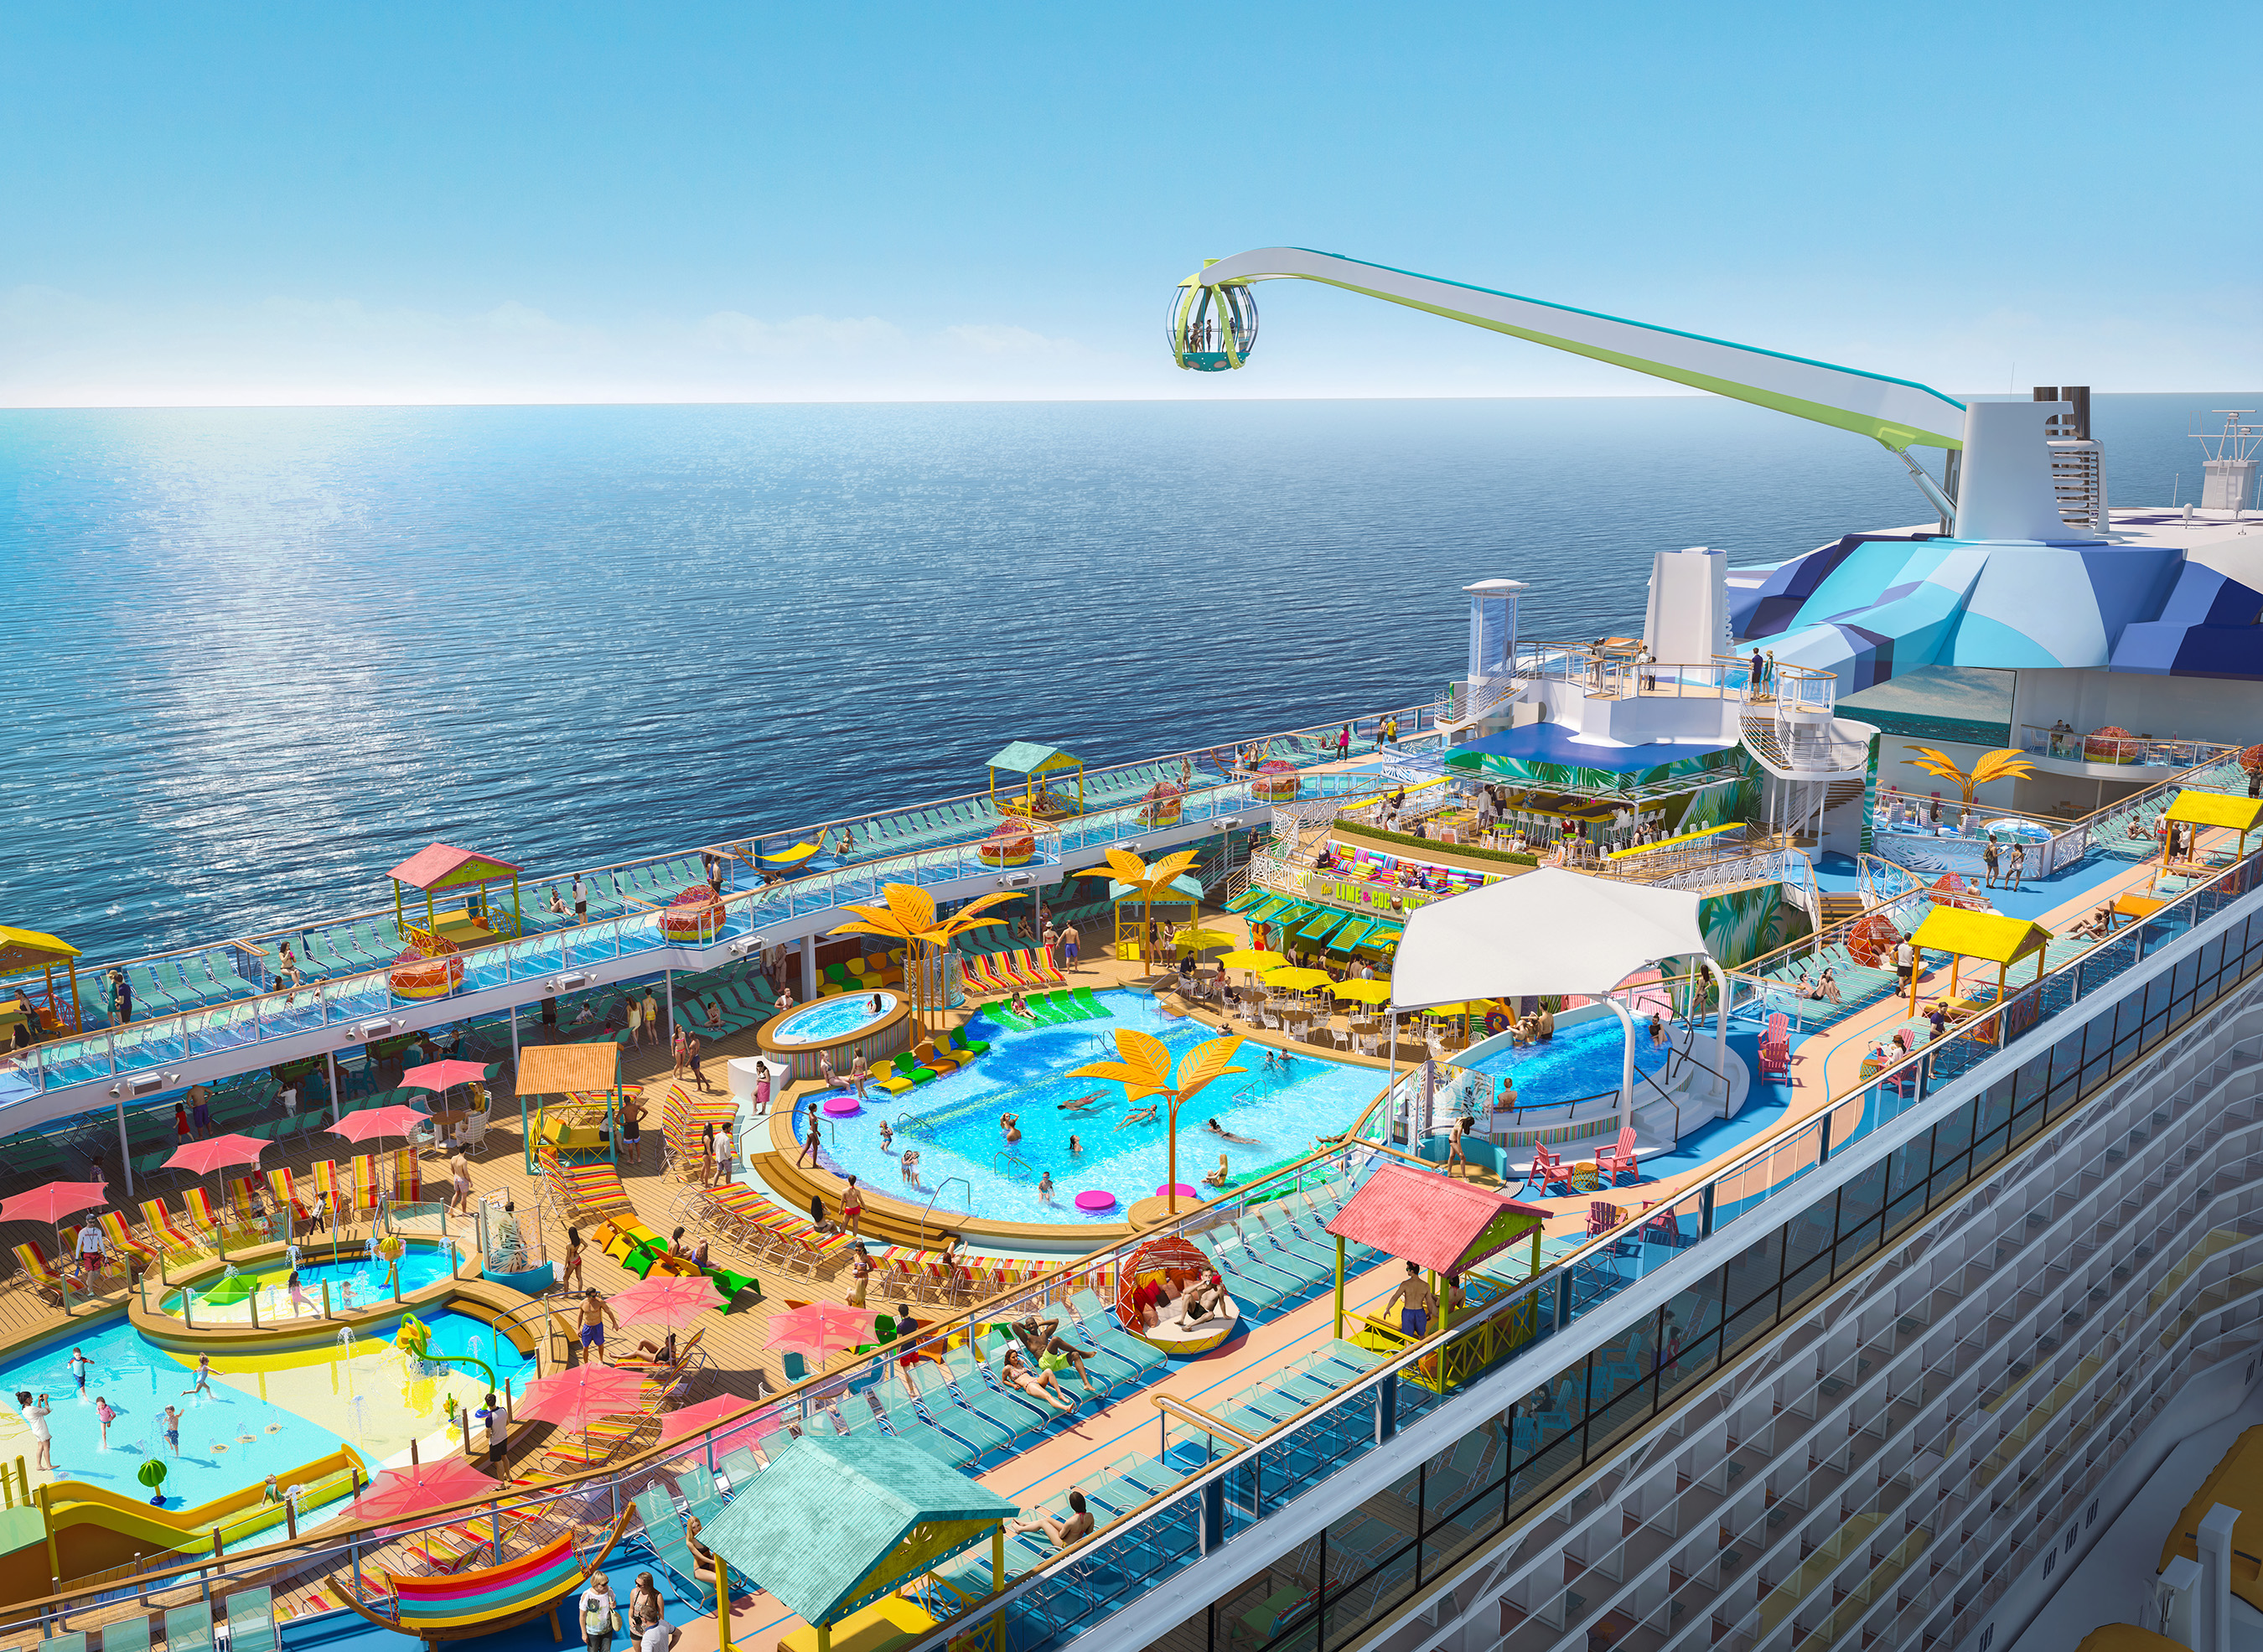 Debuting November 2020, Odyssey of the Seas will tout a vibrant, two-level pool deck where two resort-style pools, a kids aqua park and four whirlpools are surrounded by shady casitas and hammocks, perfect for enjoying the sea breeze under the sun and stars.